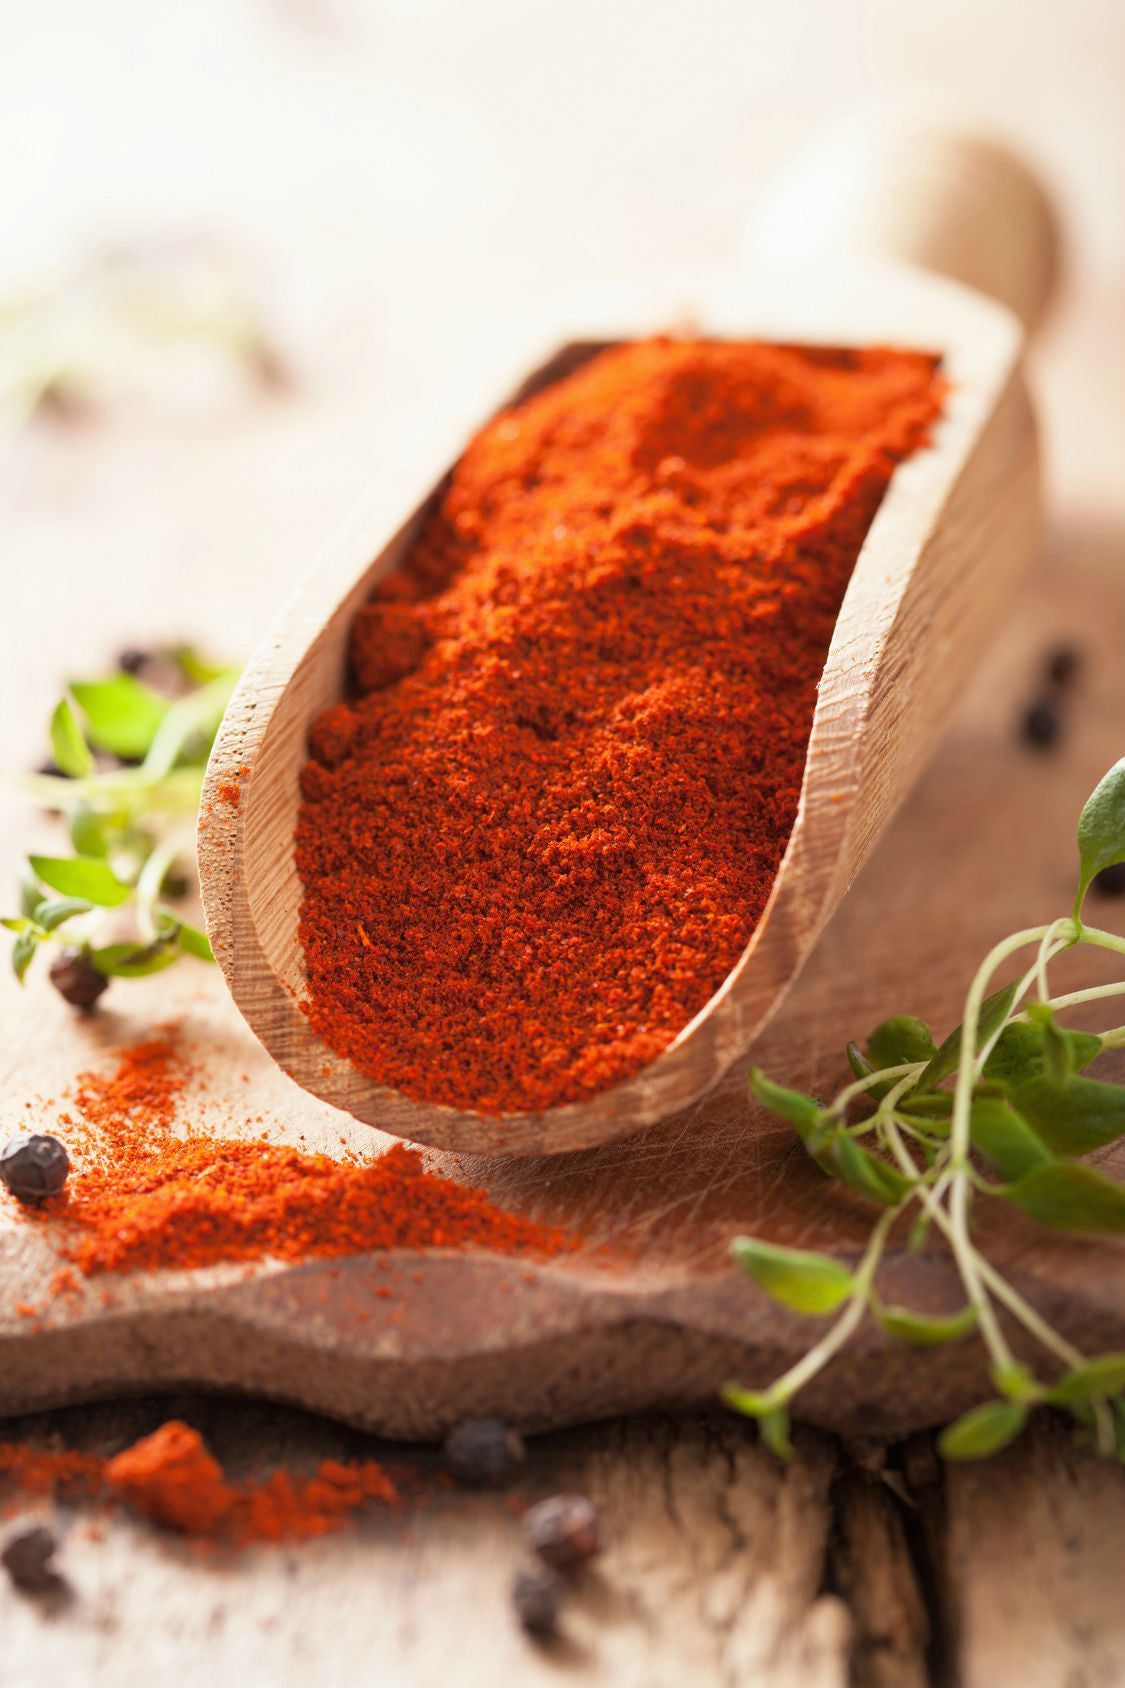 Spanish Smoked Paprika - Sweet Per oz